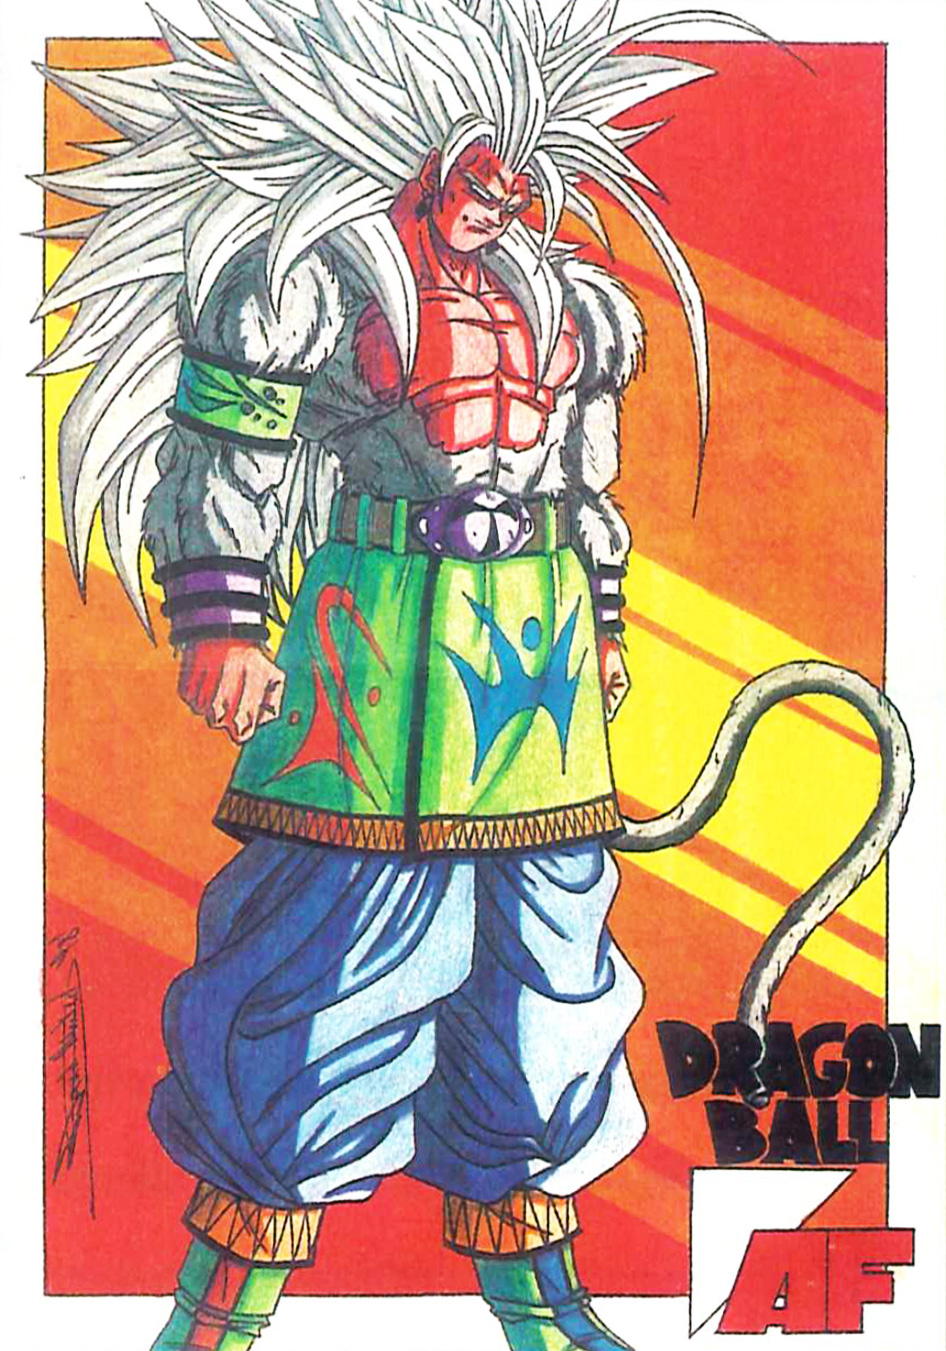 Dragon ball af dragon ball wiki - Goku 5 super saiyan ...